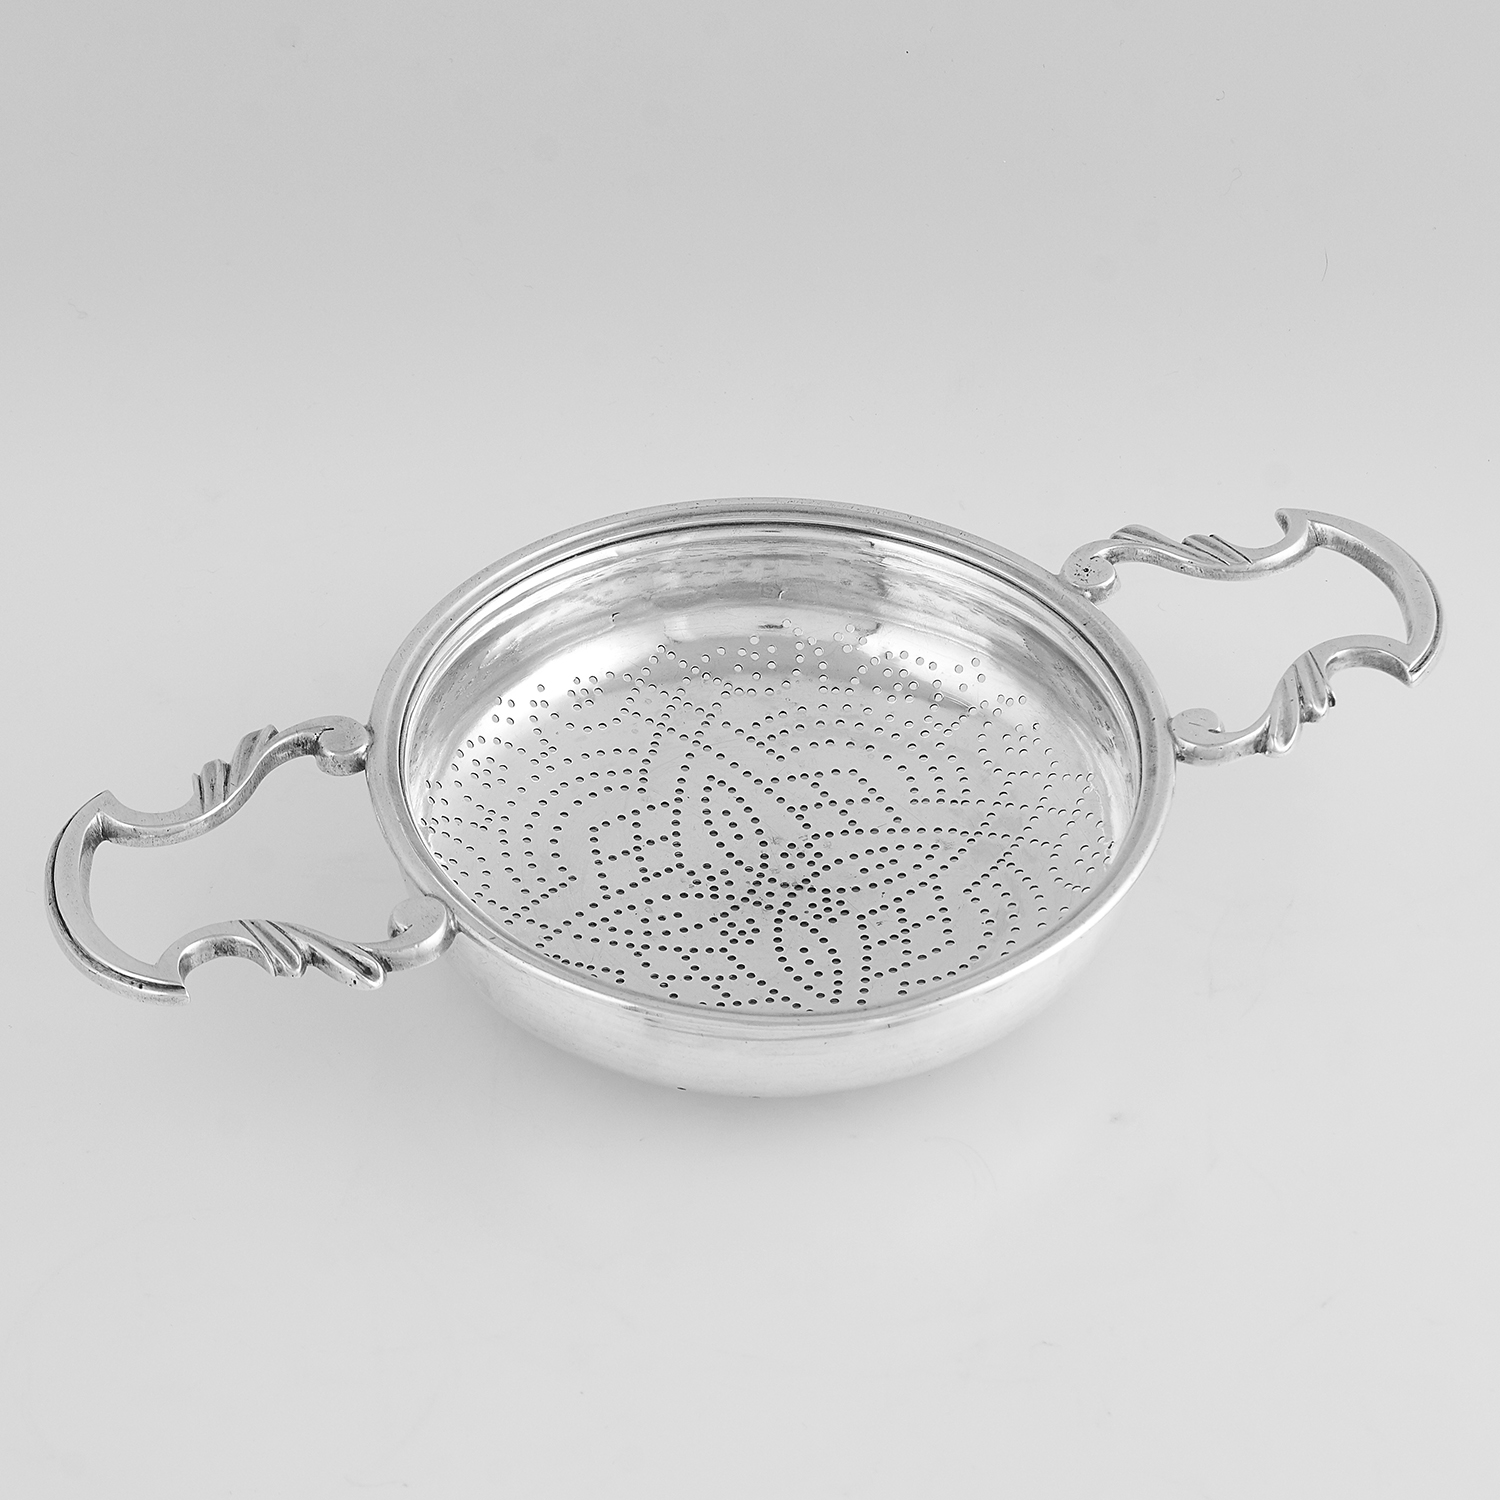 ANTIQUE GEORGE II STERLING SILVER LEMON STRAINER, WILLIAM BOND LONDON 1756 of circular form with